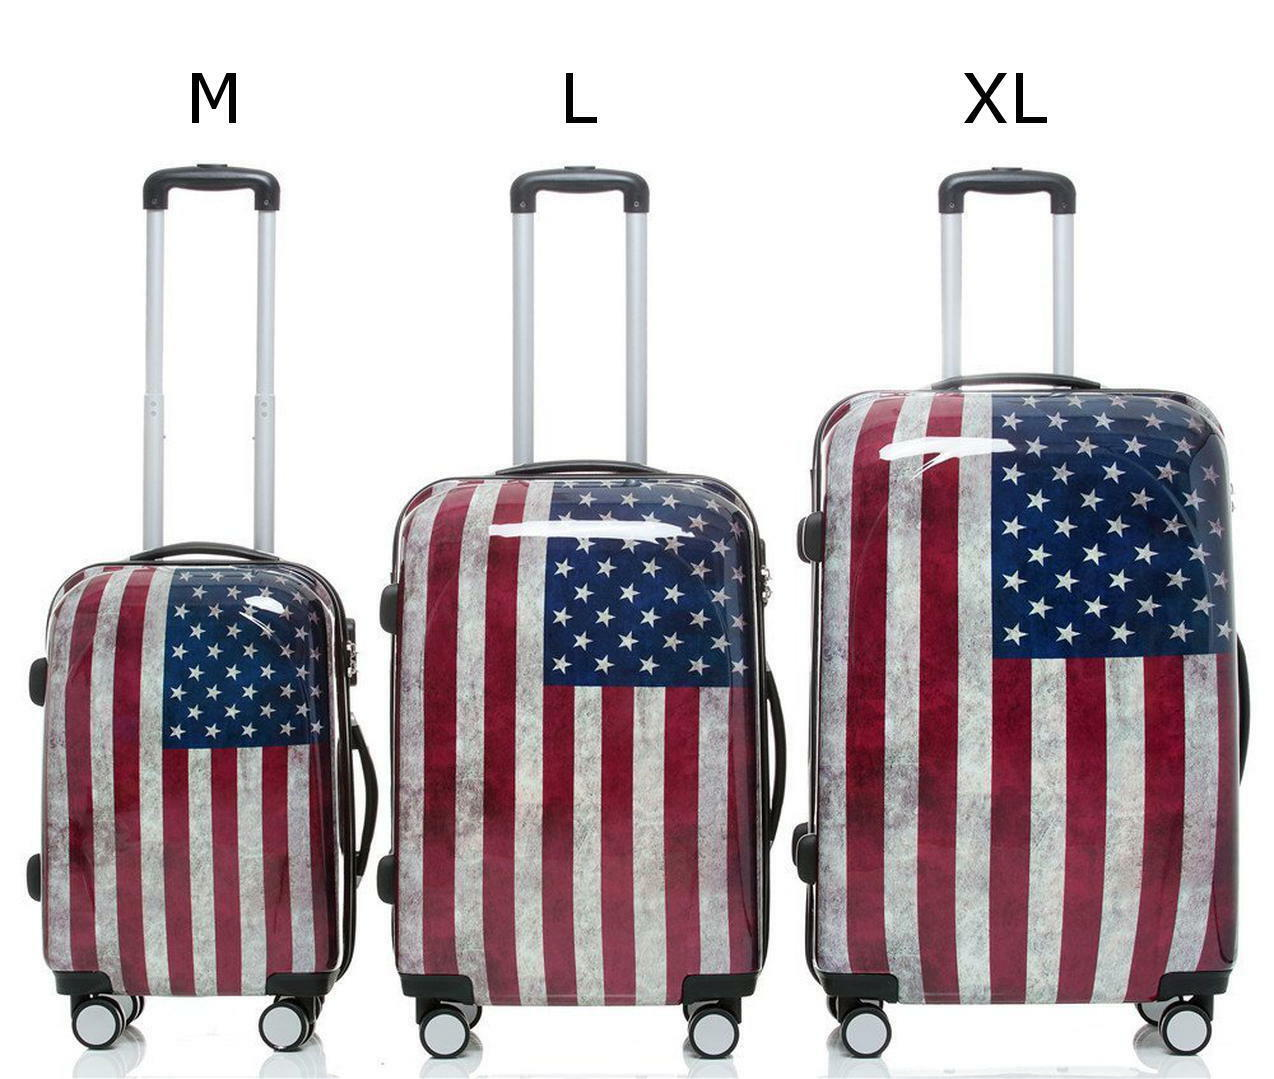 Valise trolley valise de voyage voyage trolley trolley trolley Coquille Dure Bagages taille xl usa drapeau ba82c5